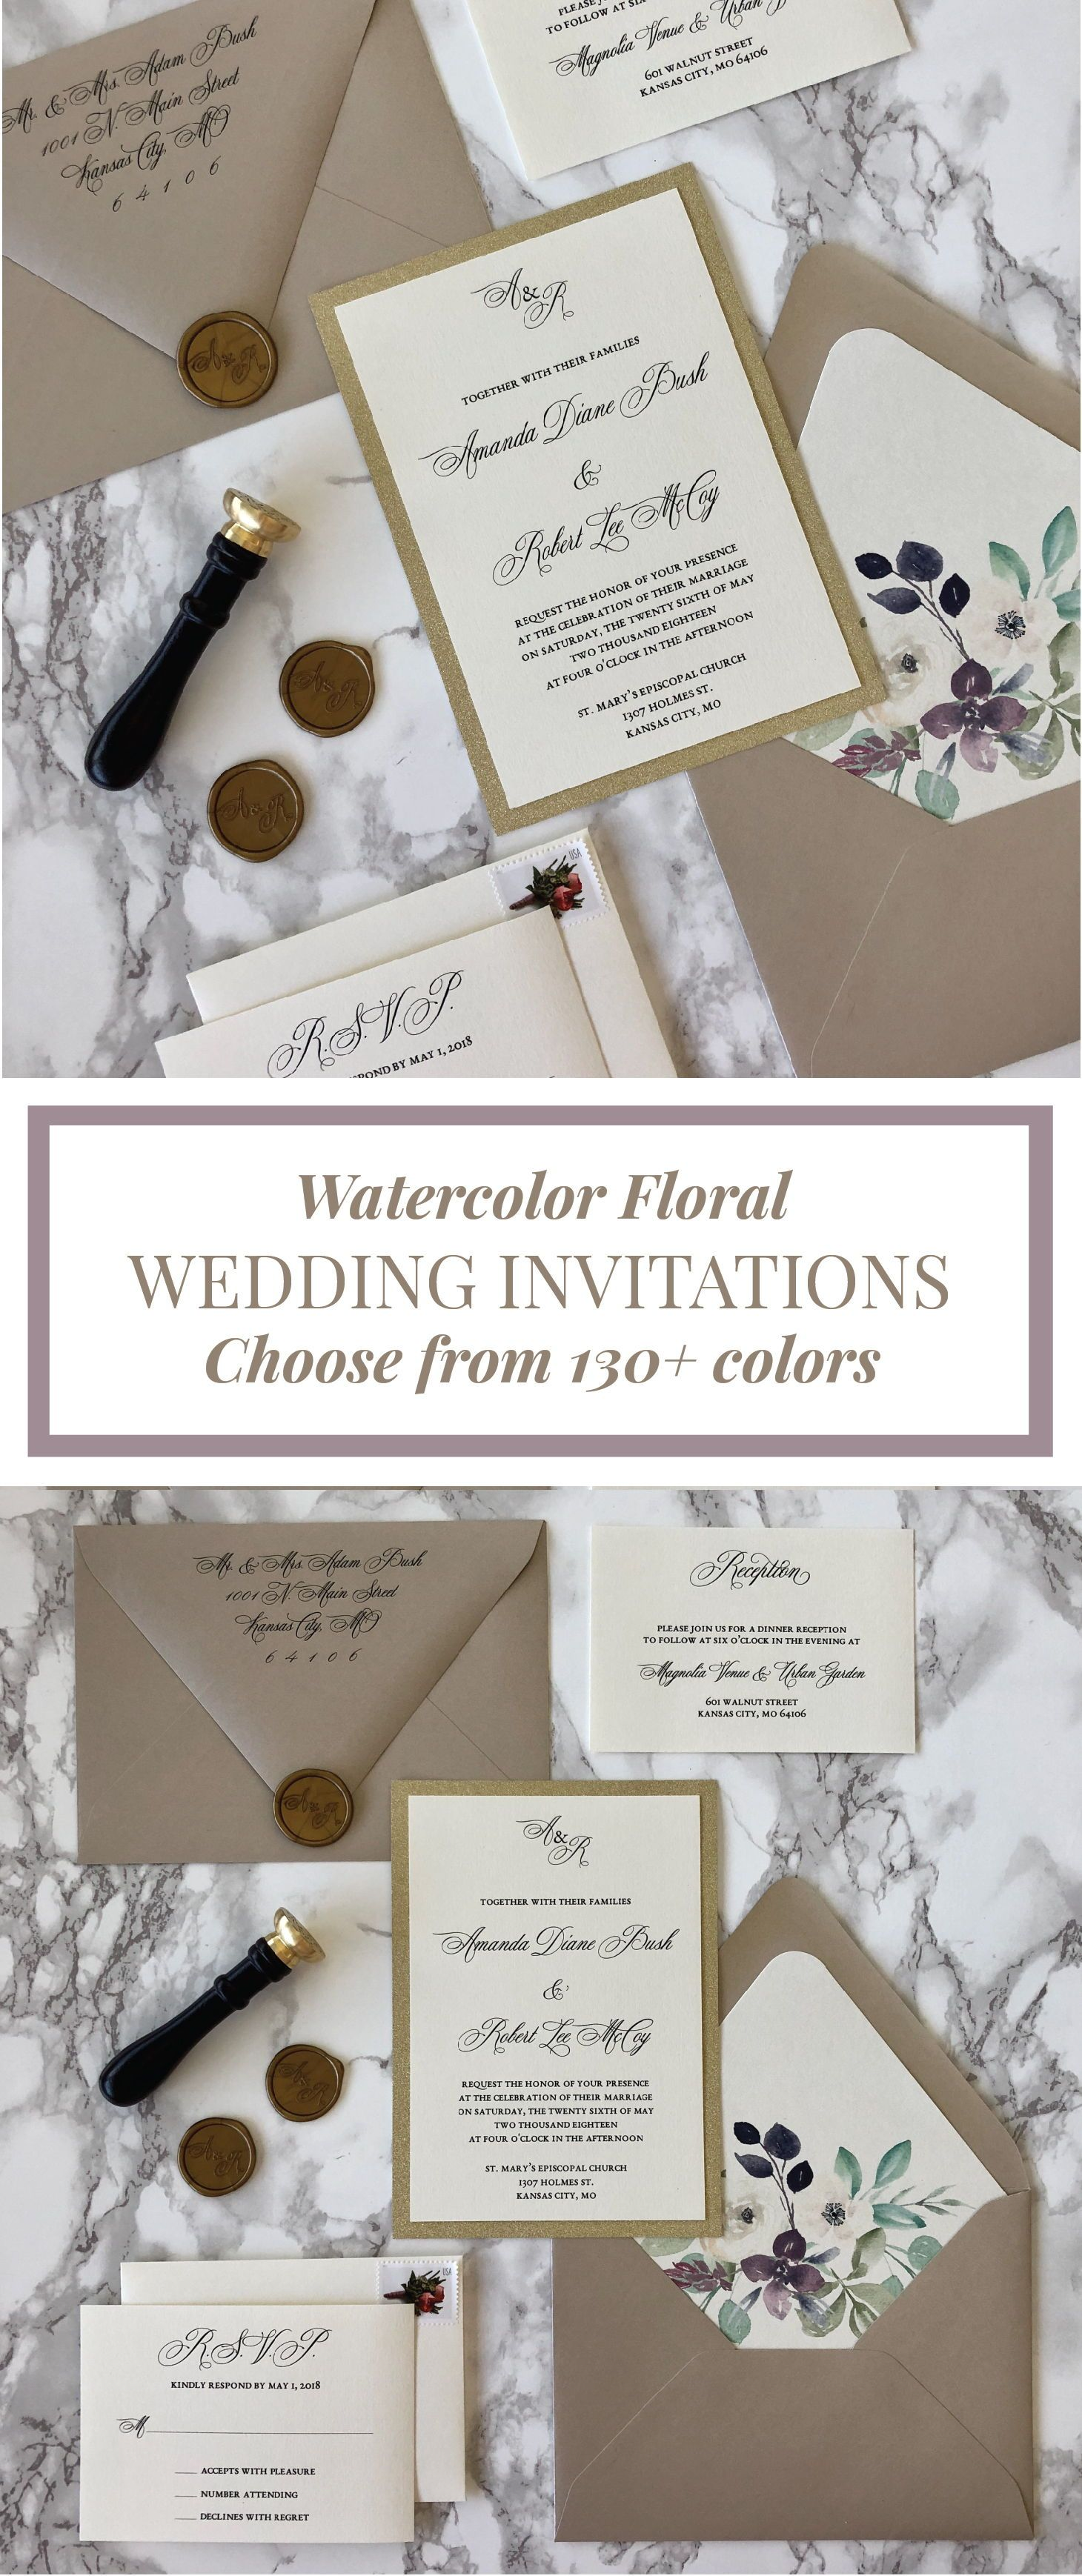 Floral And Gold Glitter Wedding Invitation With Wax Seal Wedding Invitations Simple Classic Wedding Invitations Glitter Gold Easy Diy Wedding Invitations